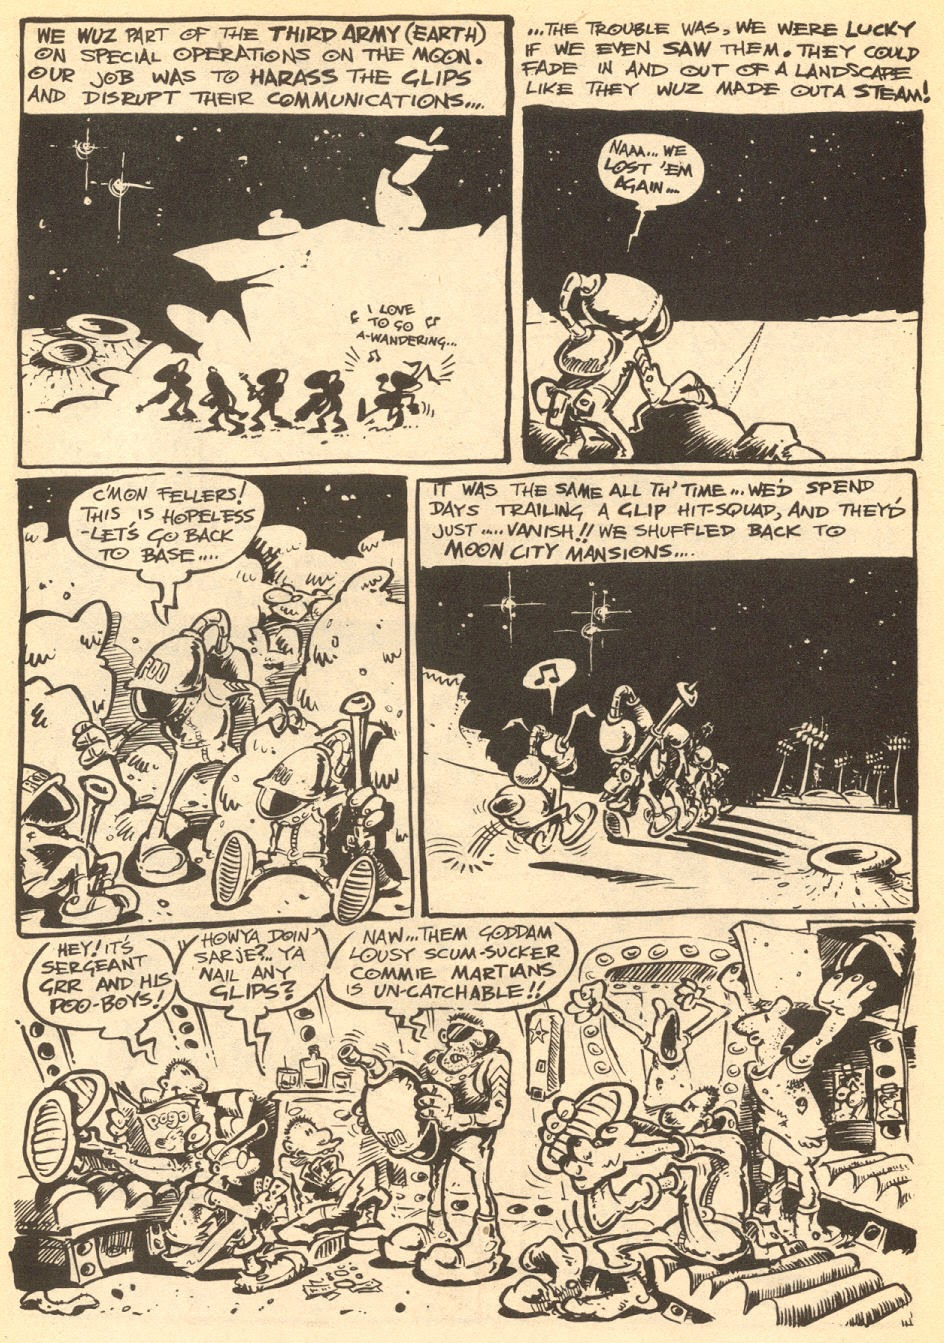 Commies from Mars: The Red Planet issue 2 - Page 16